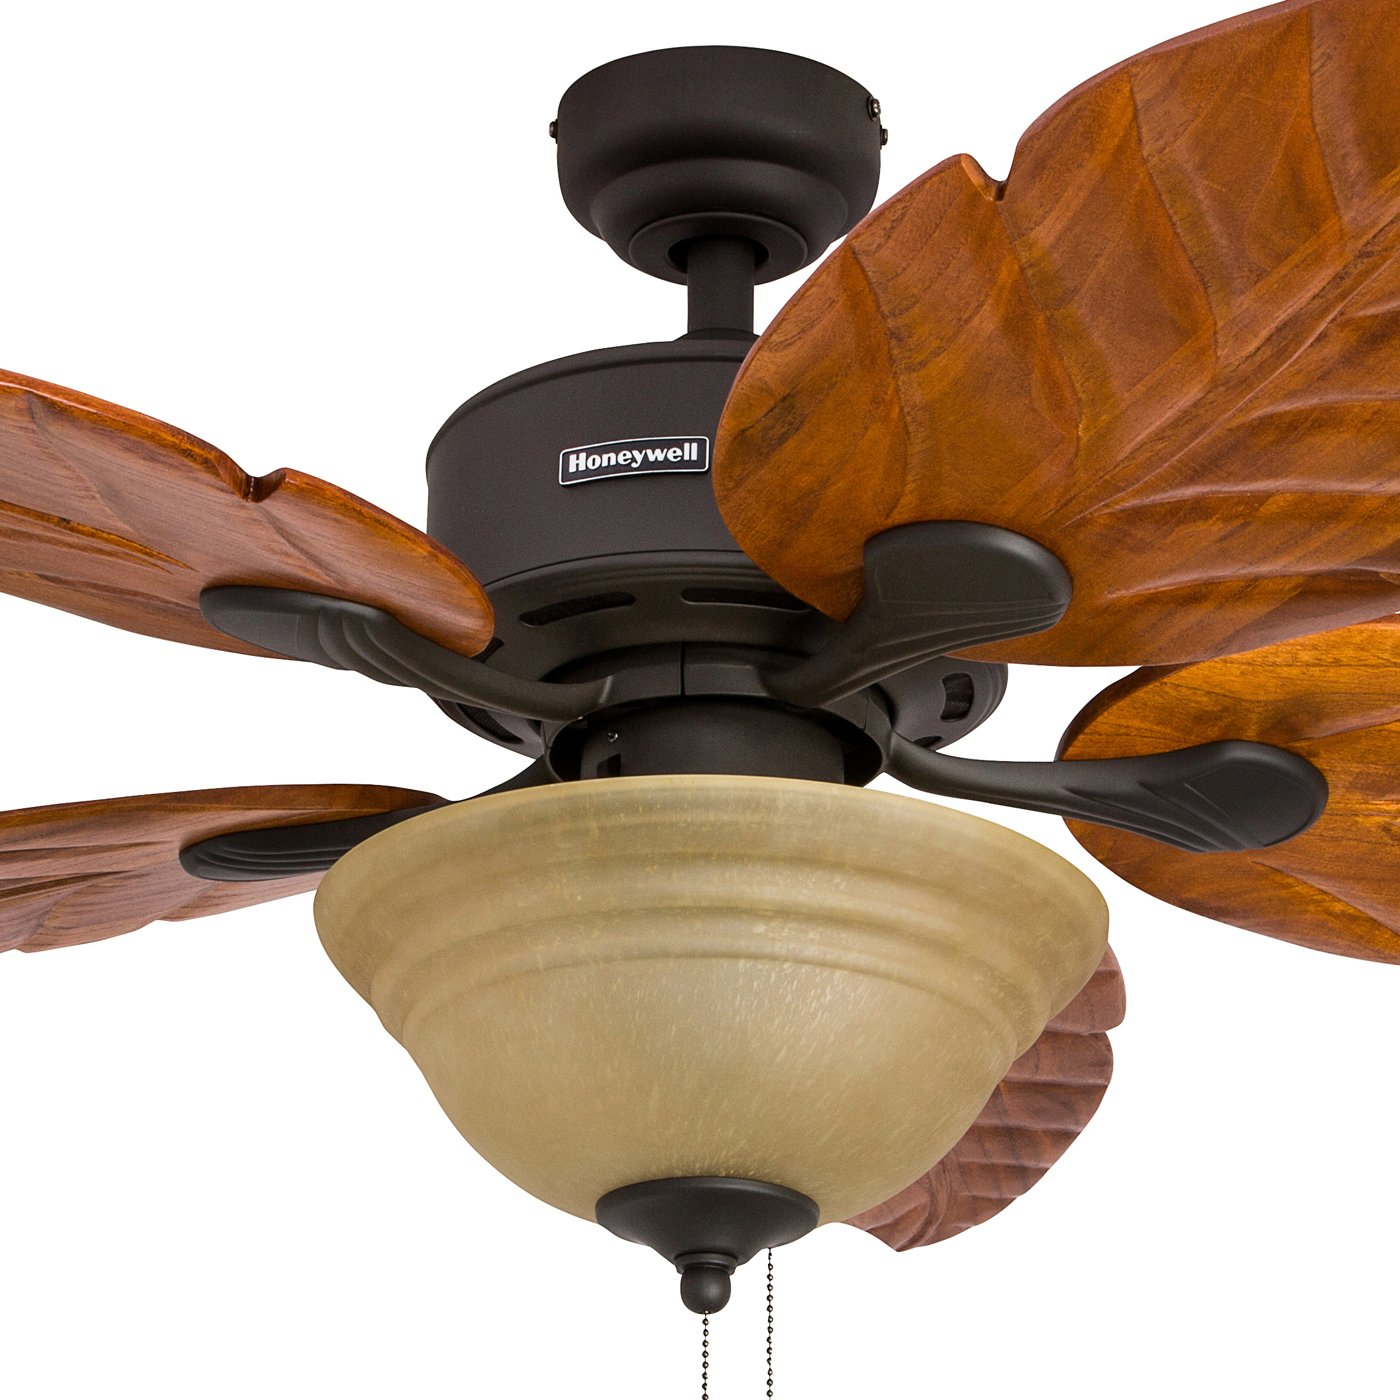 Honeywell Sabal Palm 52 Inch Tropical Ceiling Fan with Sunset Bowl